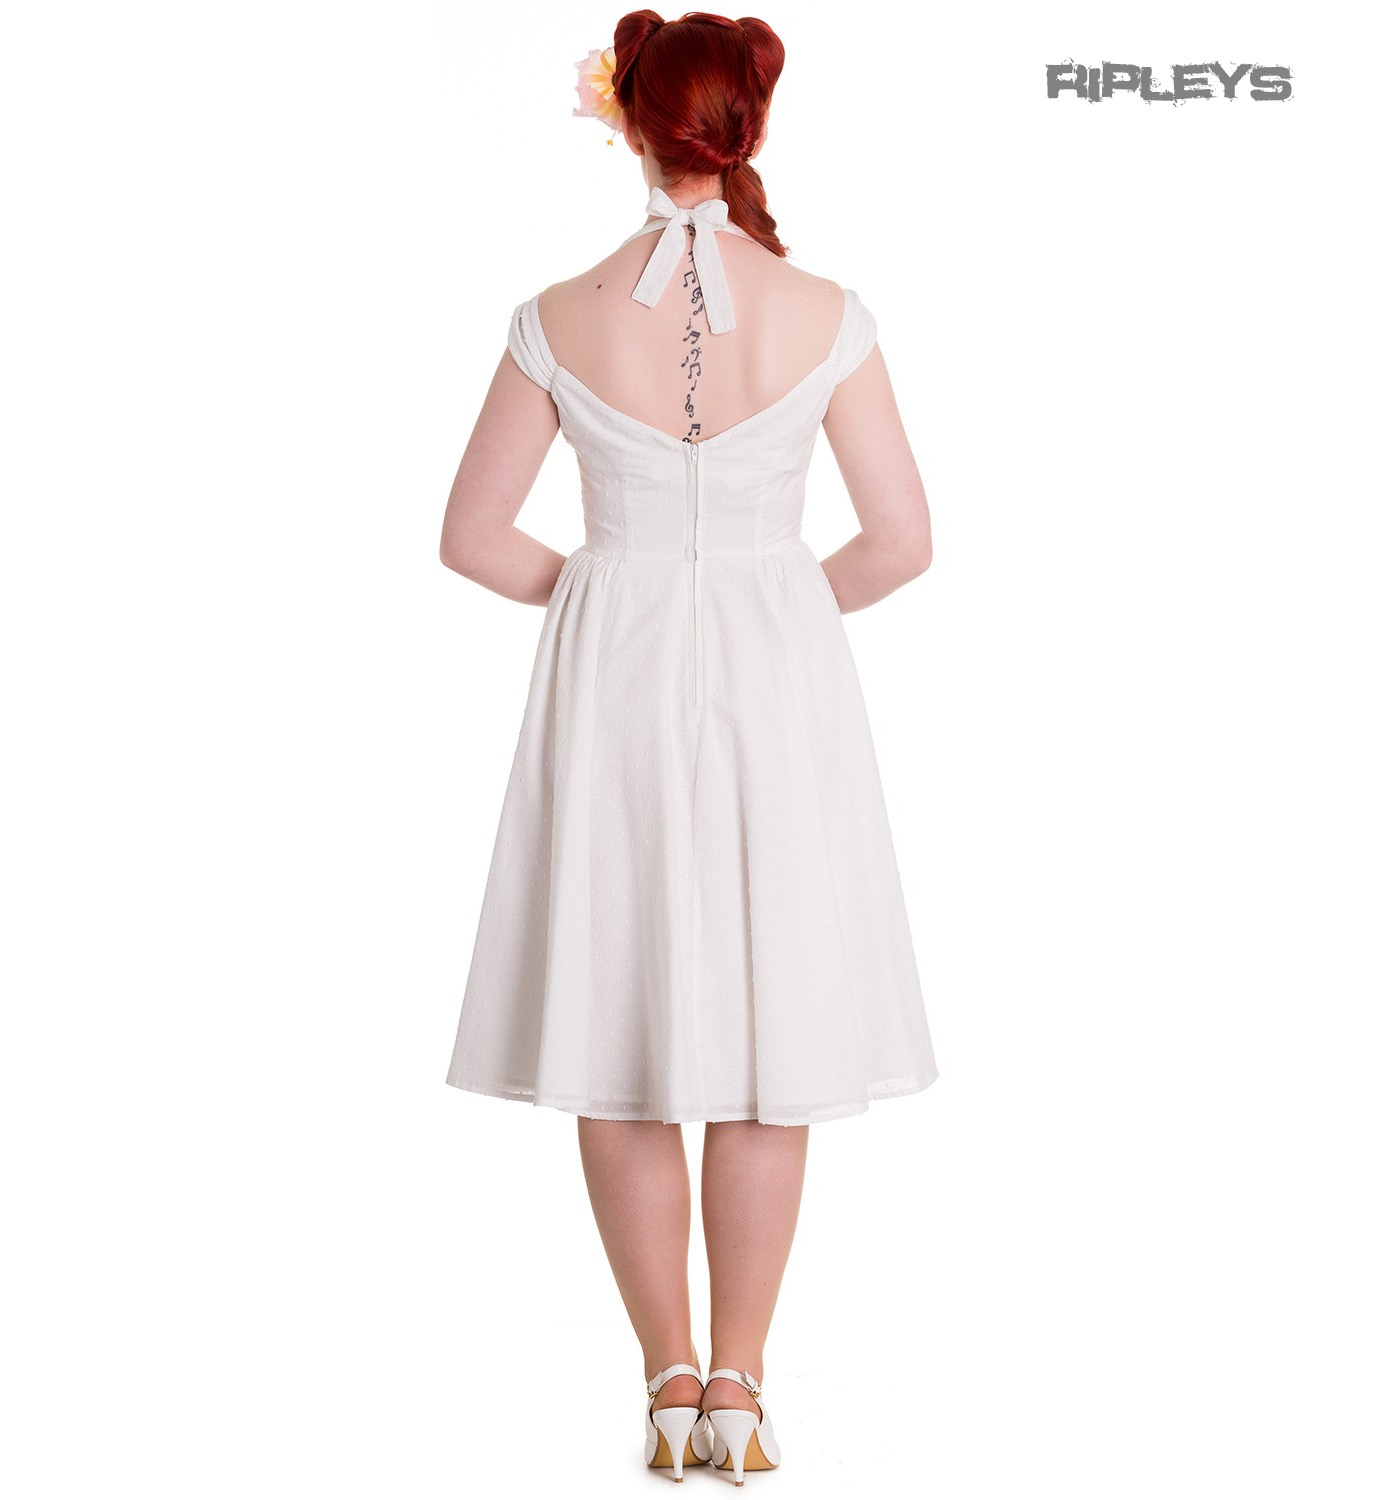 Hell-Bunny-Pin-Up-Party-50s-Dress-Vintage-Rockabilly-EVELINE-White-All-Sizes thumbnail 4